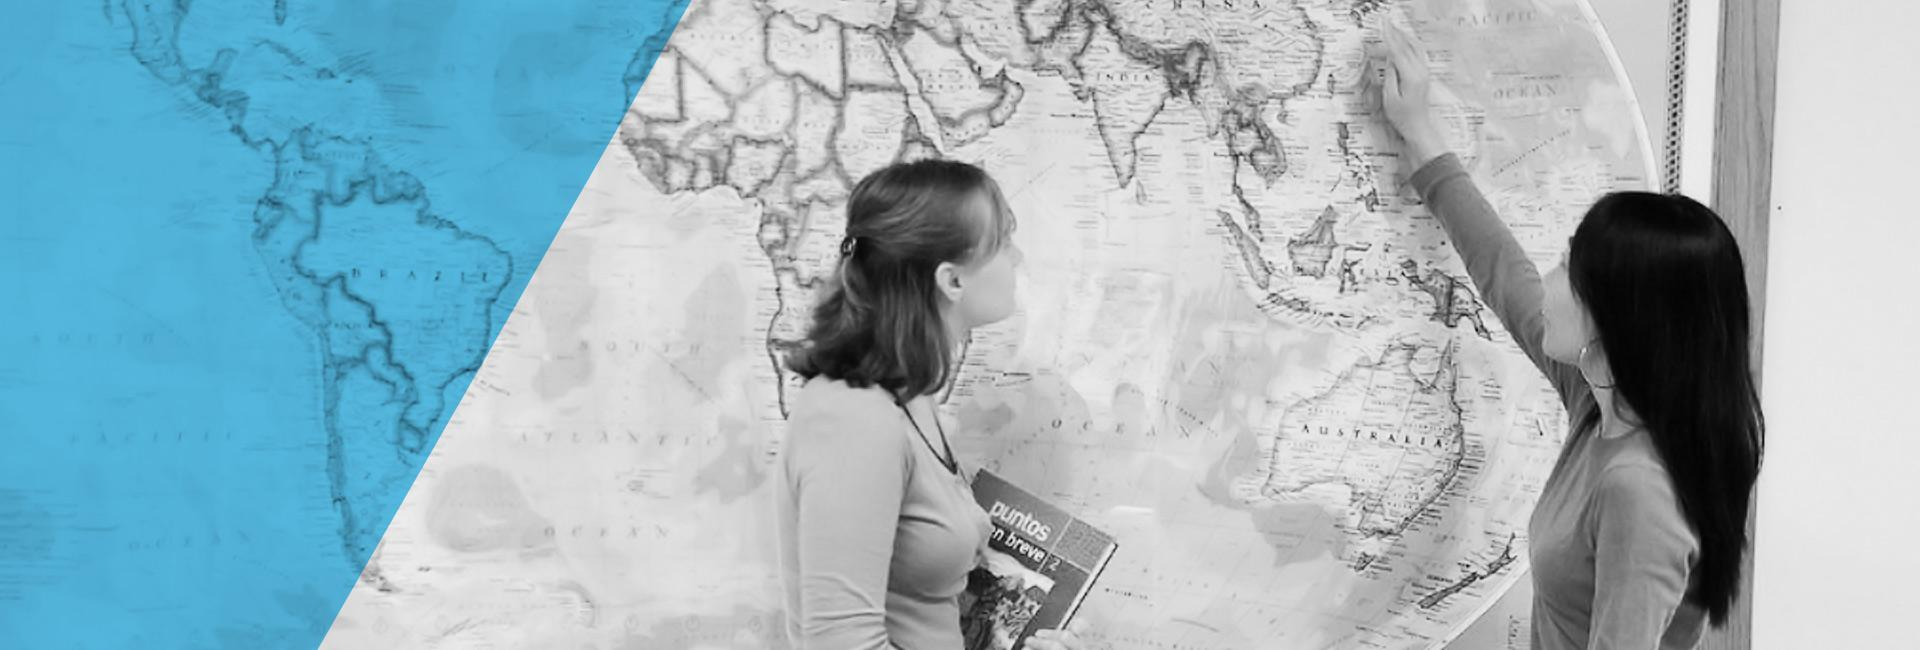 Modern Languages, Anthropology & Geography - Southeast